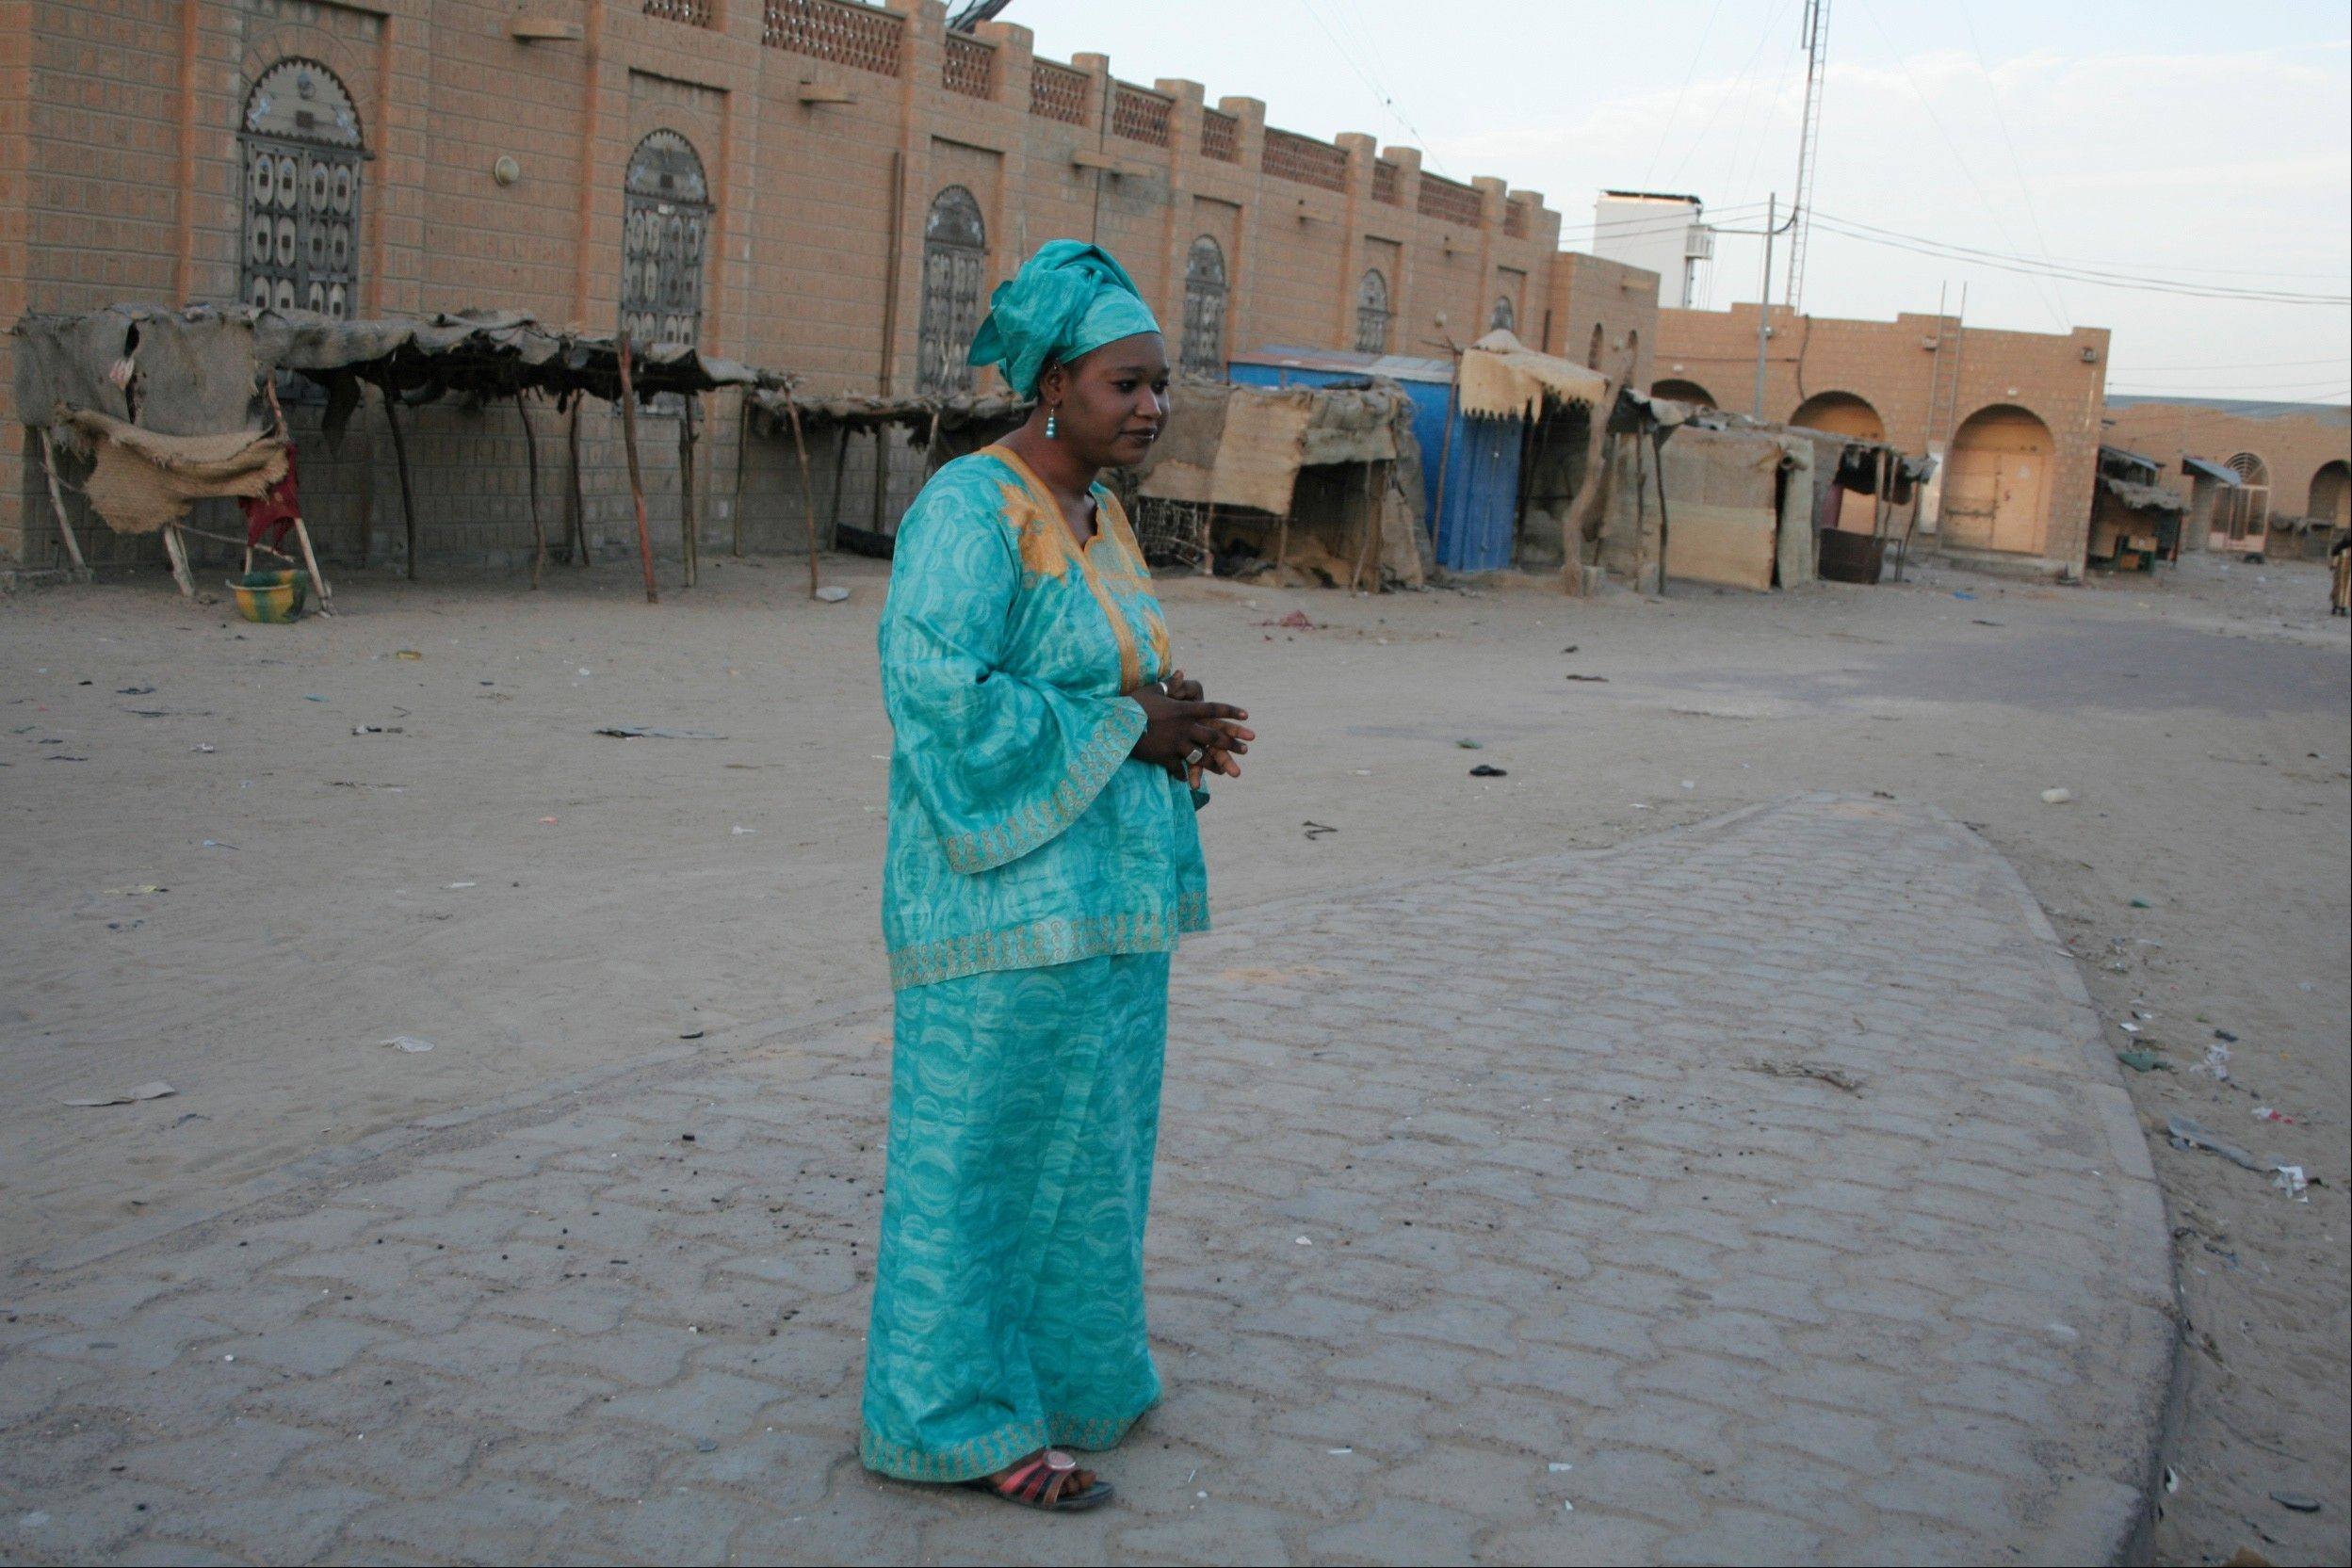 Salaka Djicke stands in the town square where she was publicly whipped after being caught having a relationship with a married man, in Timbuktu, Mali. Until they were chased out by the French last week, the Islamic extremists who controlled northern Mali since April applied a harsh brand of Shariah in the moderate Muslim region. Djicke was jailed and publicly flogged, and at least one other unmarried couple was executed by stoning.